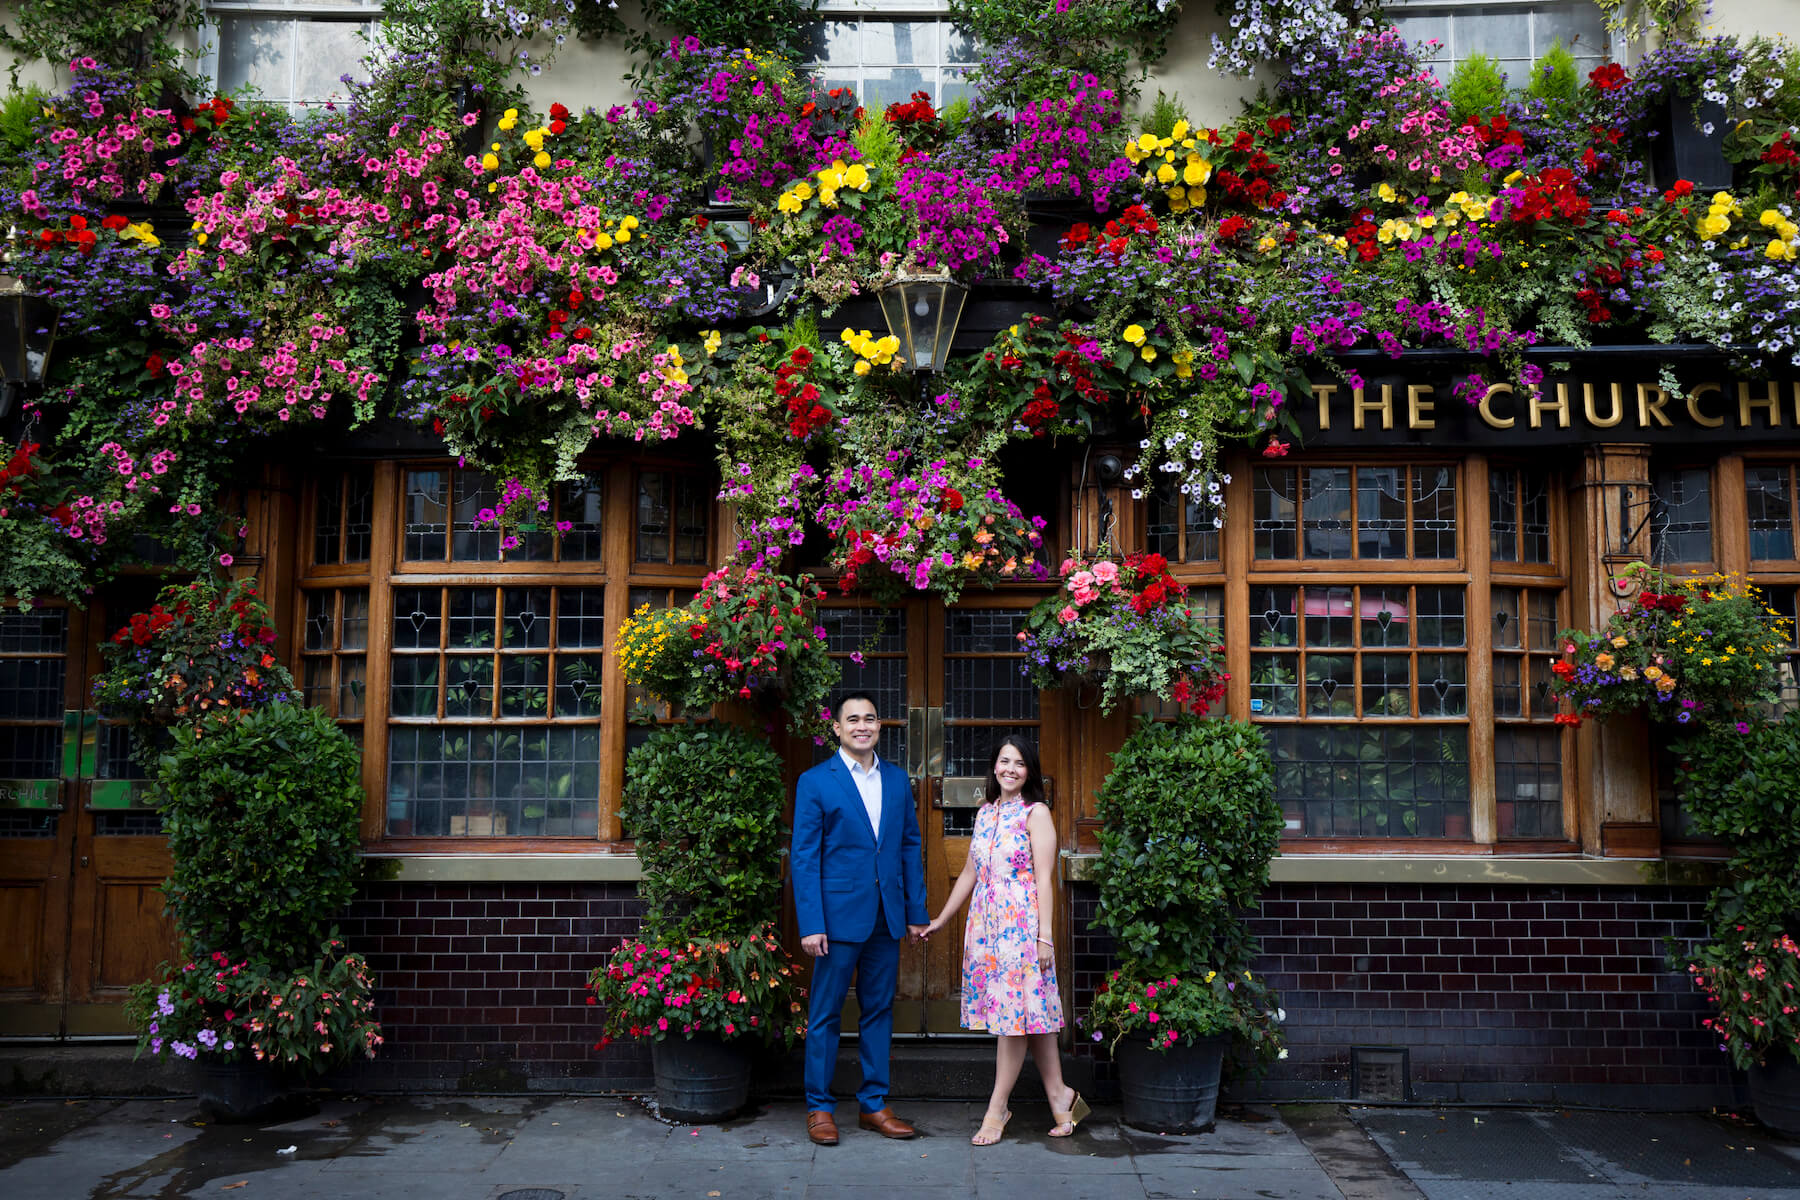 couples trip in front of a pub in London, England